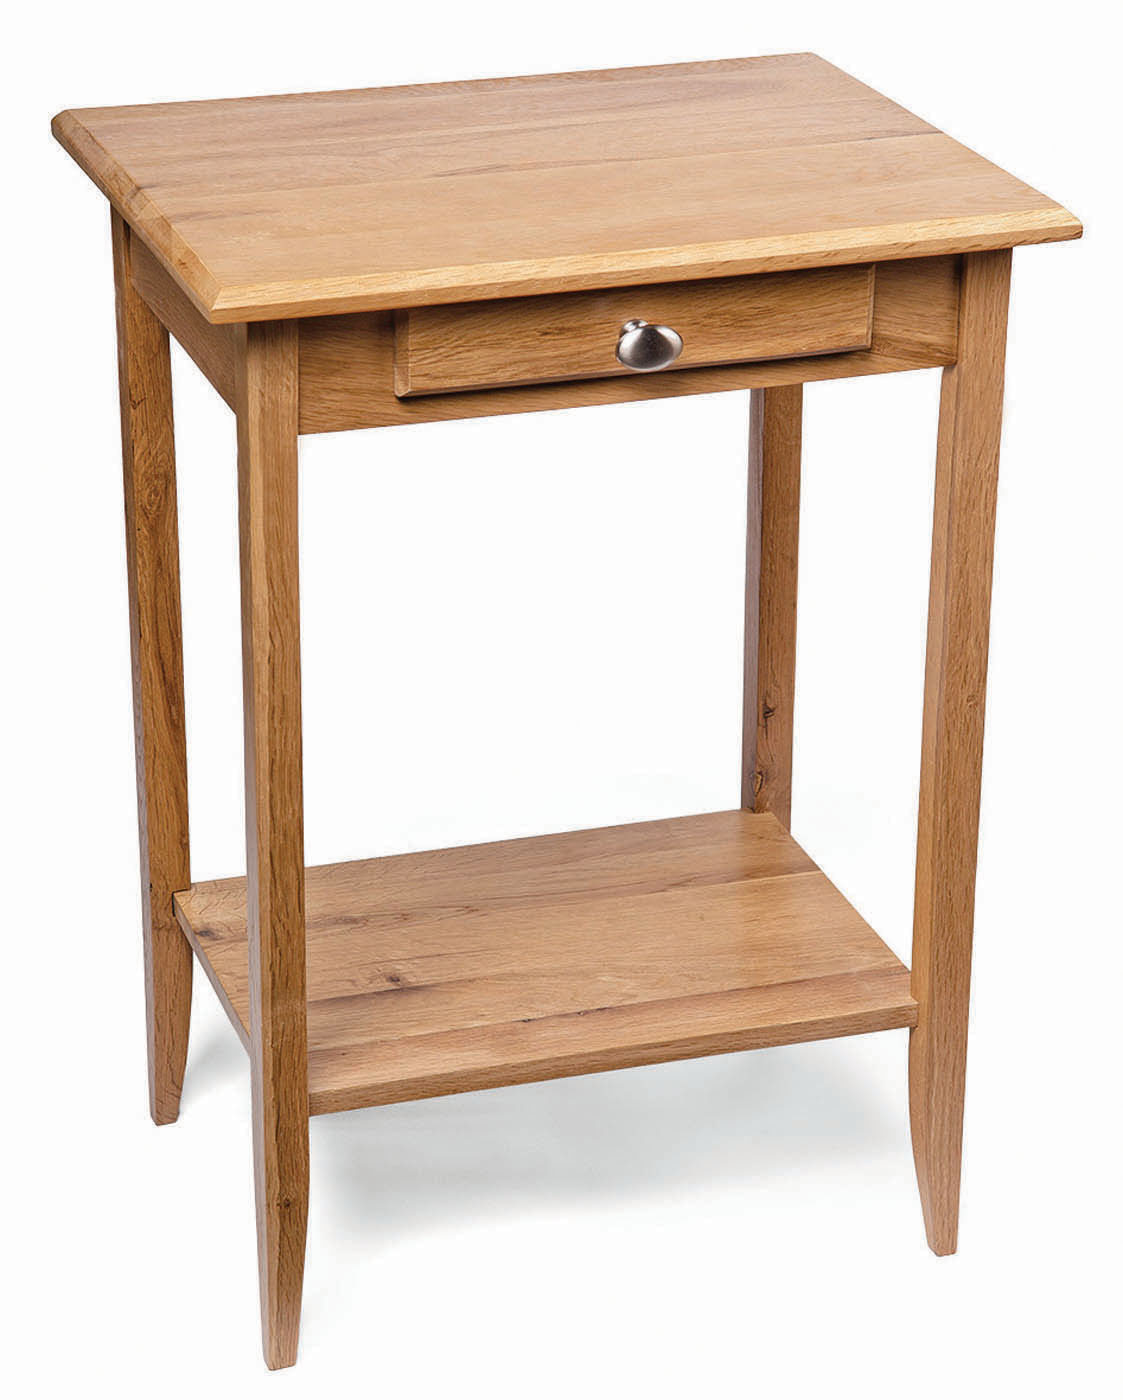 Small Oak Console Table Solid Wood Telephone Bedside